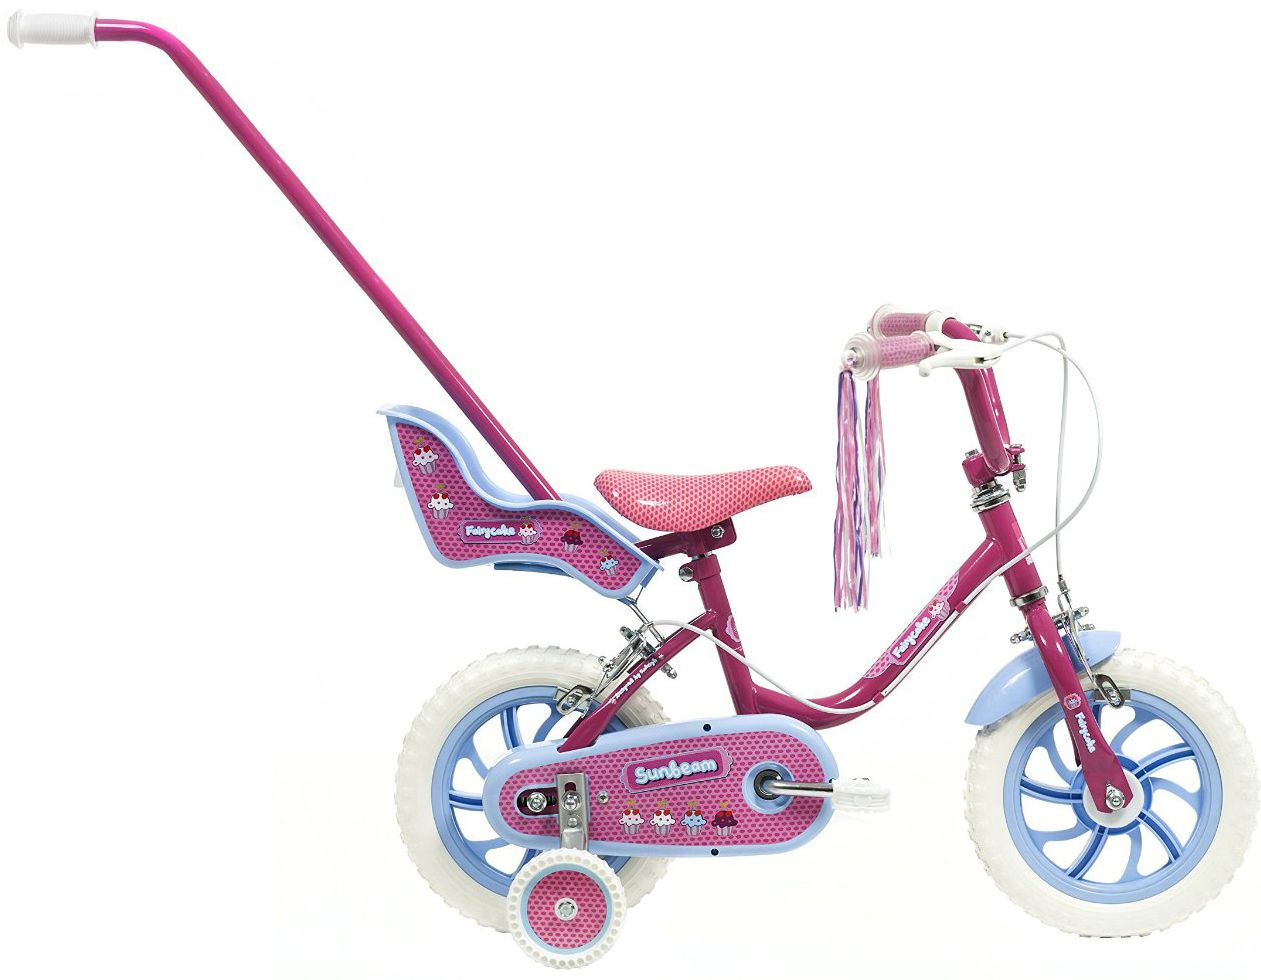 ca26179af09 12 inch Girl\'s Bike with Parent Handle and Stabilisers Pink Blue ...